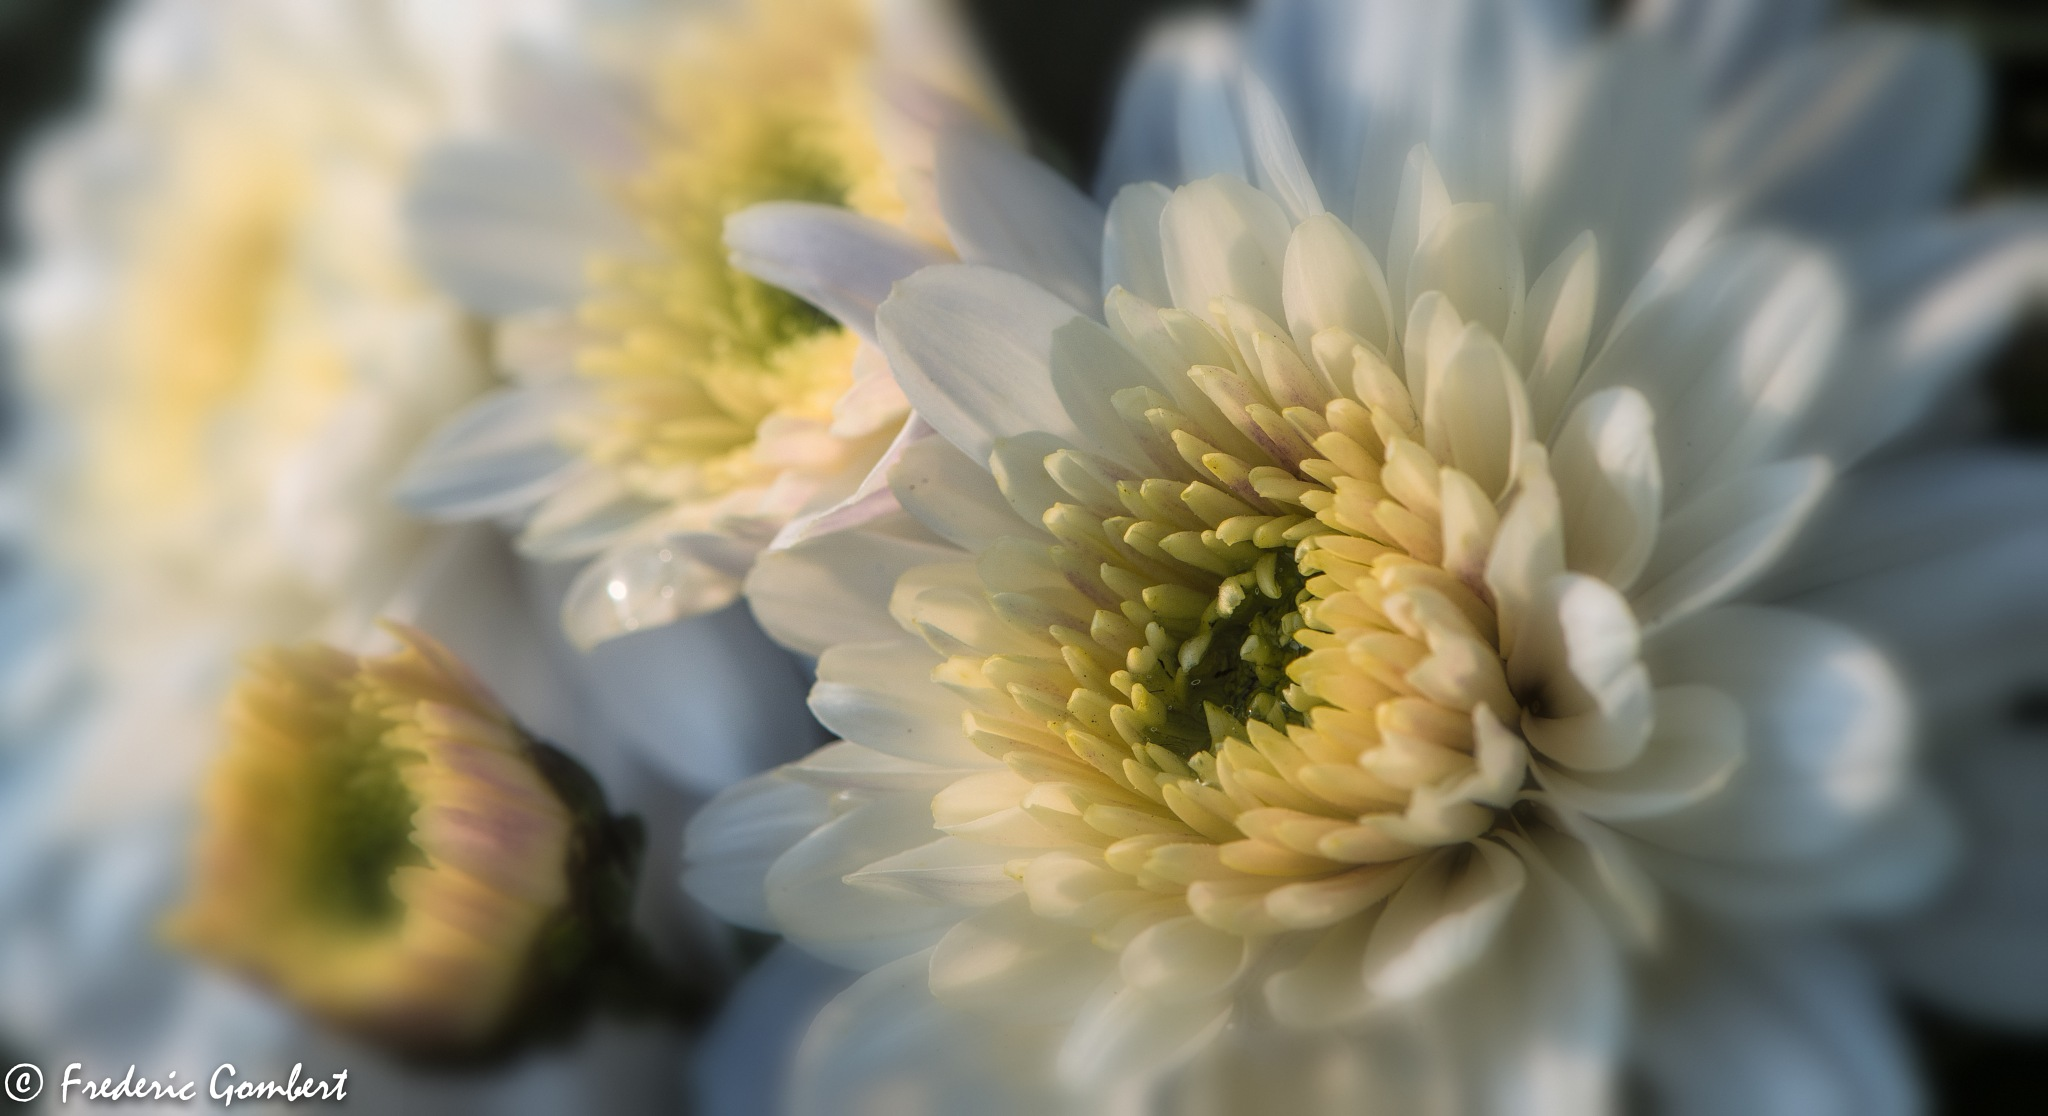 Sunlight by Frederic Gombert